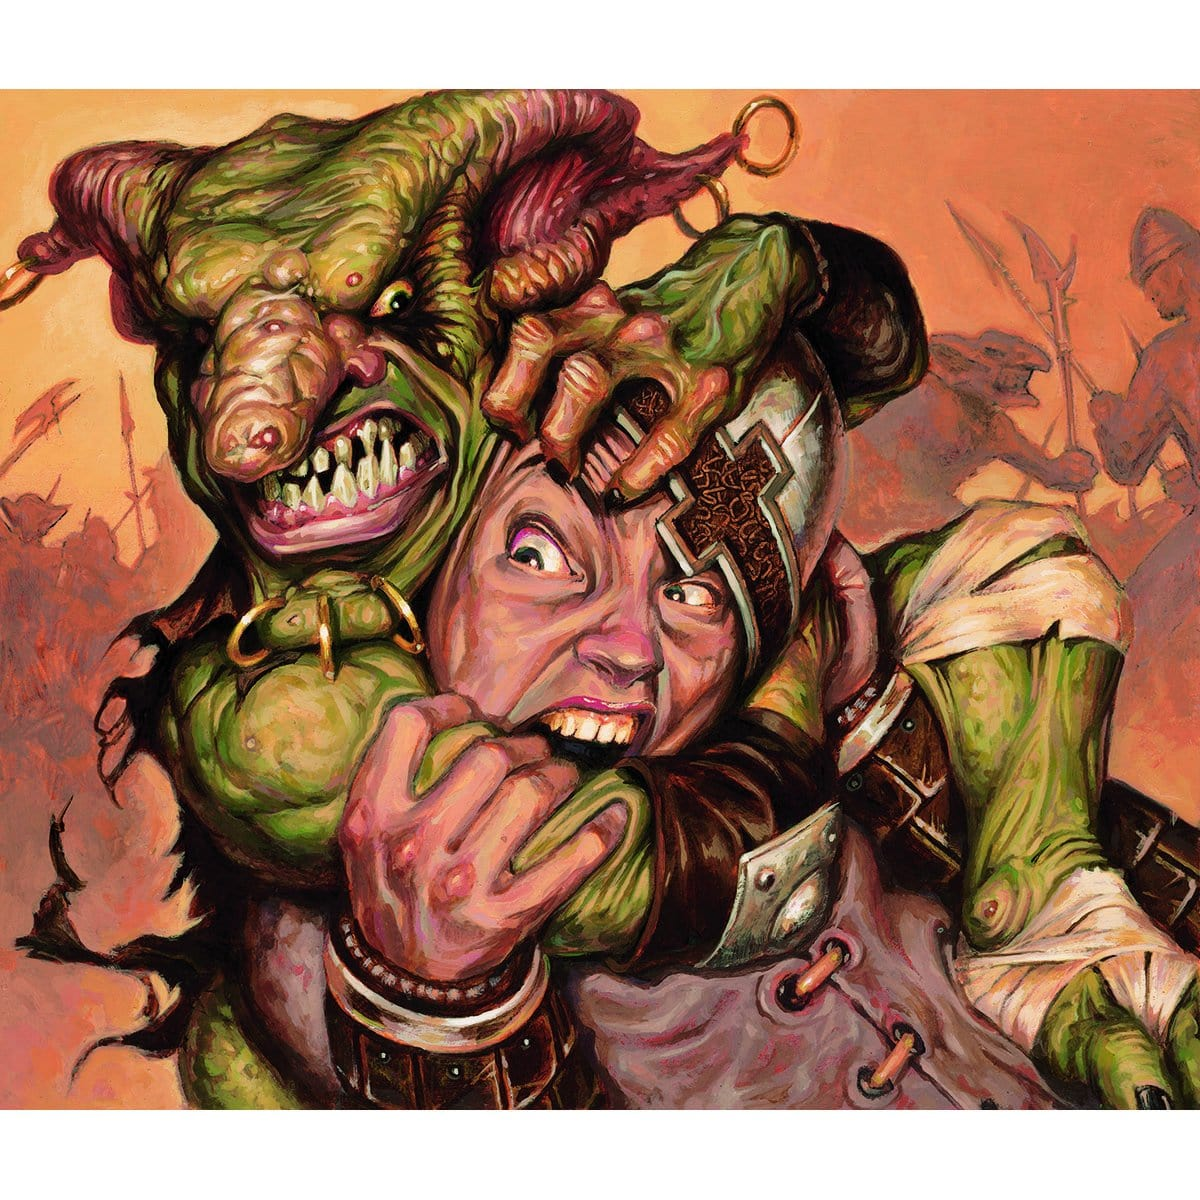 Goblin Piledriver Print - Print - Original Magic Art - Accessories for Magic the Gathering and other card games